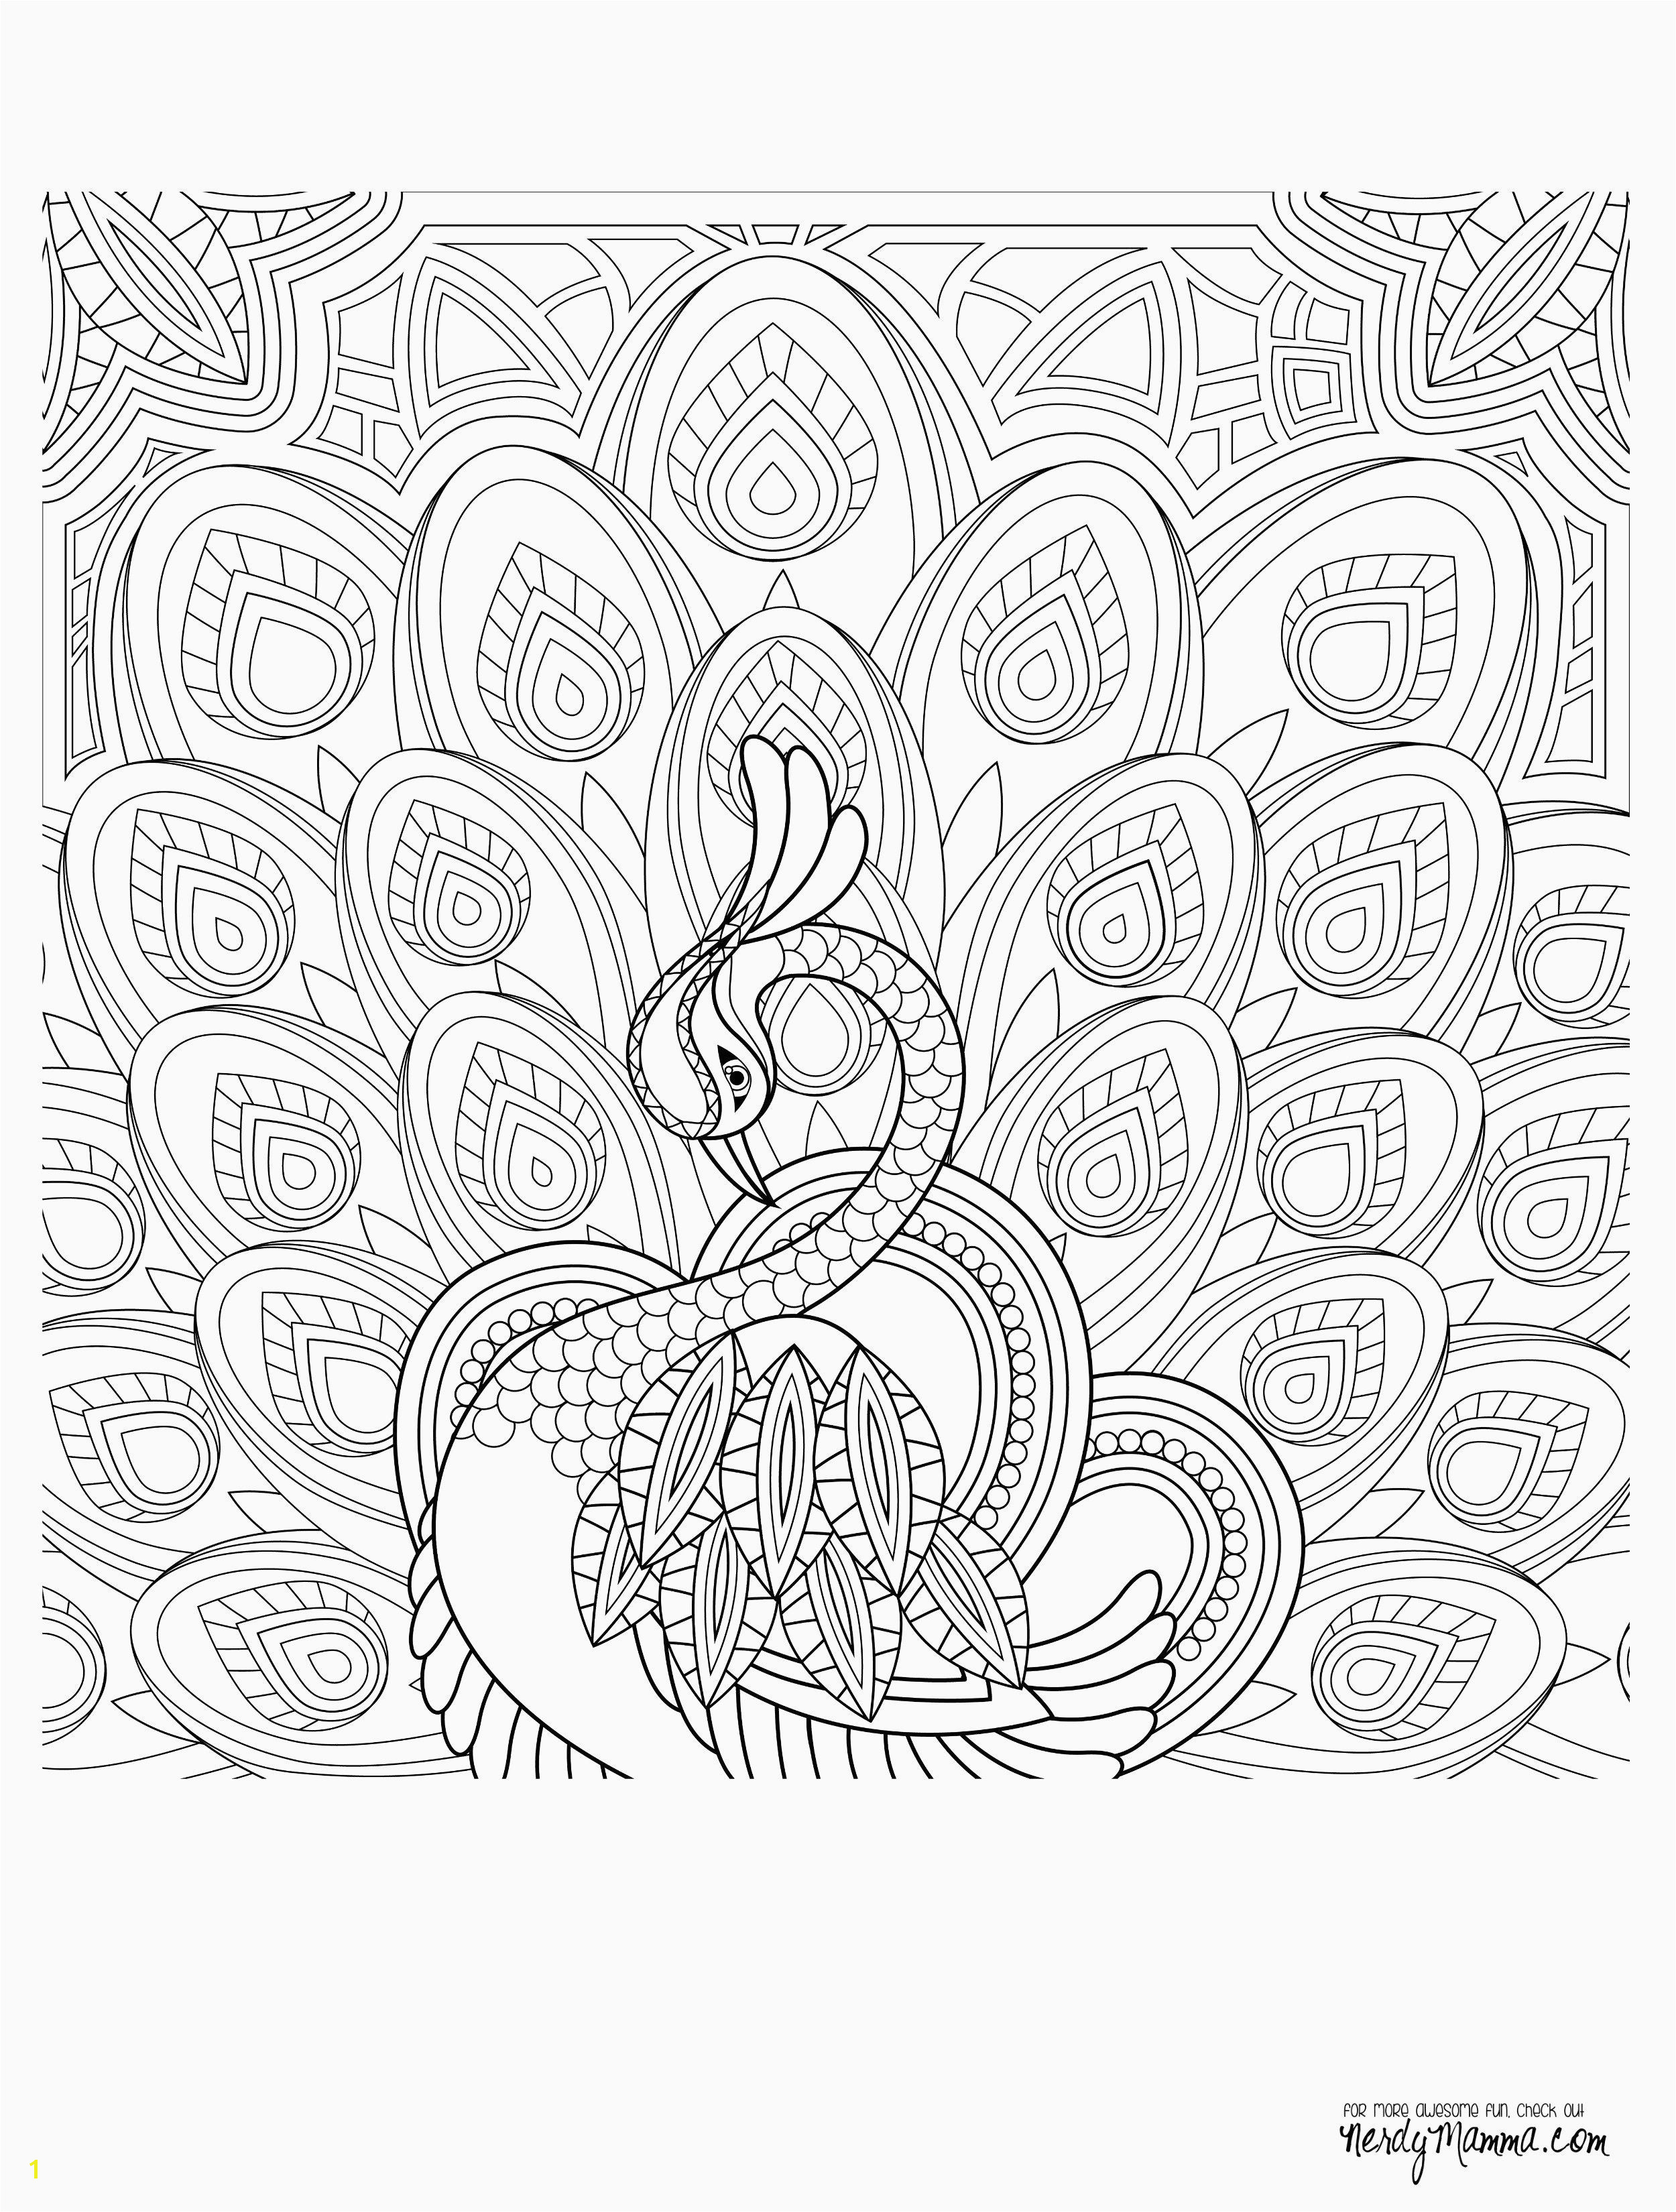 Free Printable Heart Mandala Coloring Pages Free Printable Coloring Pages for Adults Best Awesome Coloring